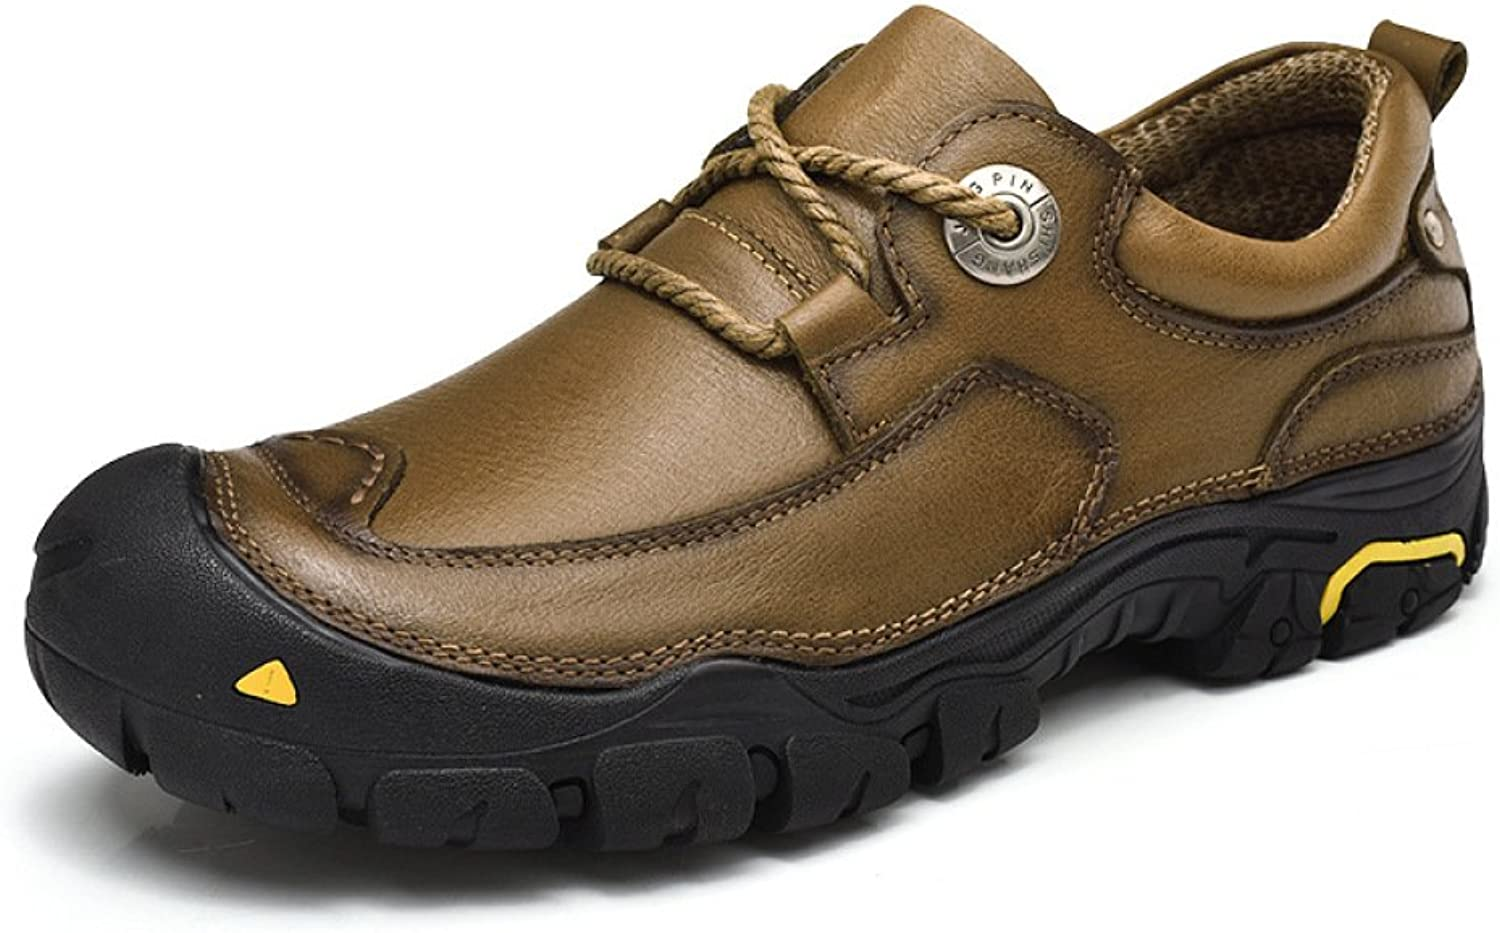 YXLONG New Men's Outdoor Casual shoes Tooling shoes Men's Low To Help Leather Suede Leather 46 Large Size Men's shoes